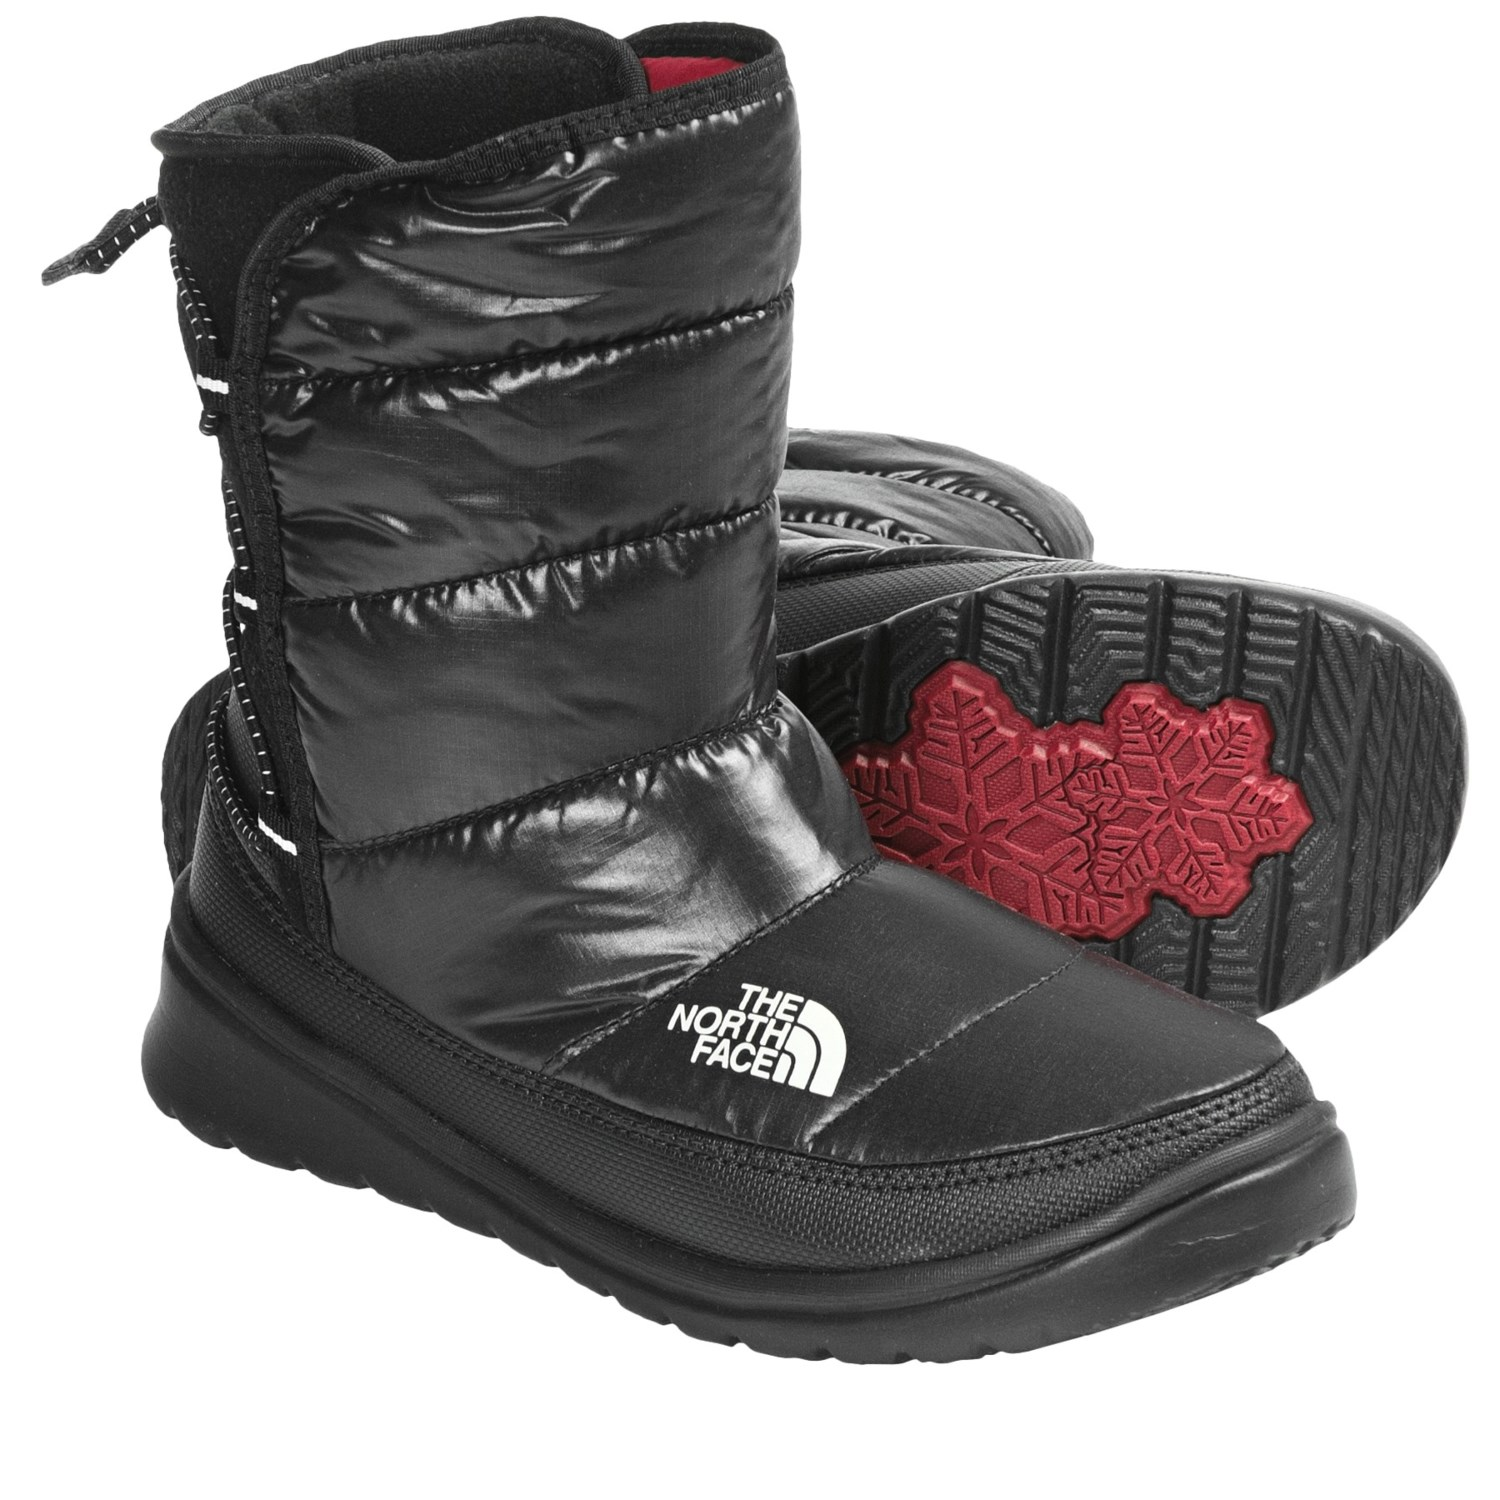 the-north-face-lorette-winter-boots-insulated-for-women-in-shiny-tnf